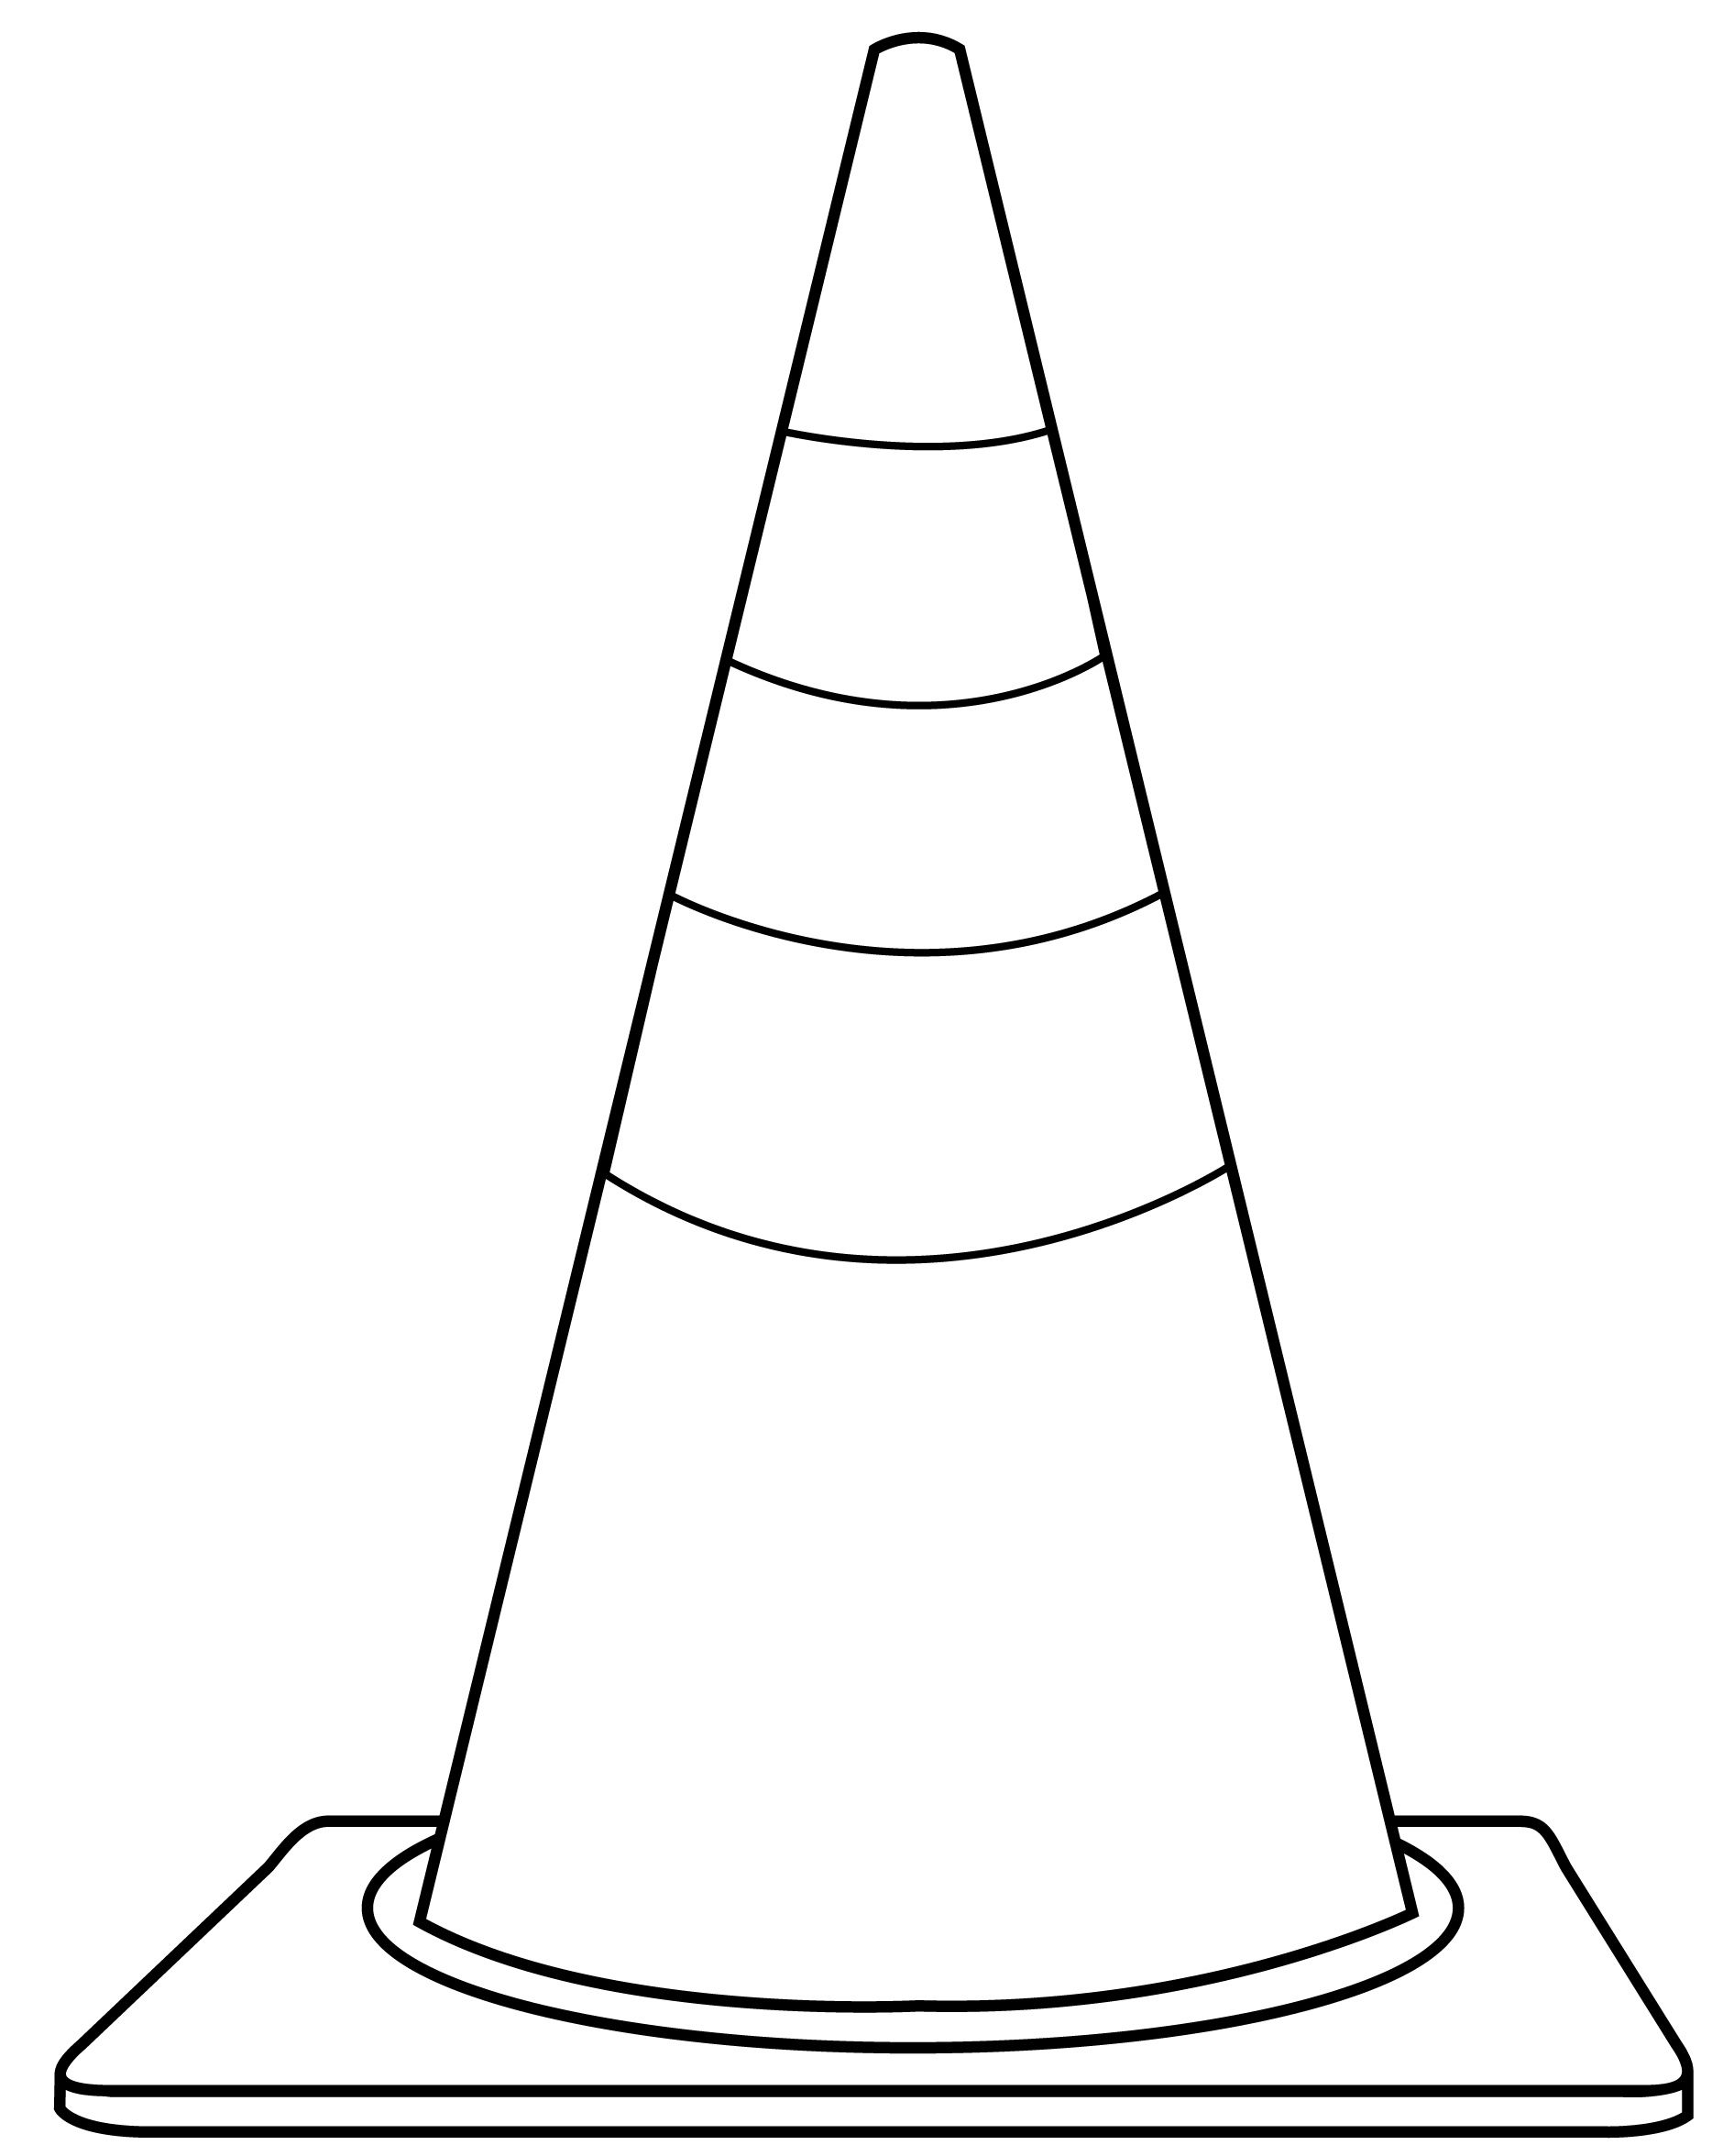 Cone clipart #2, Download drawings